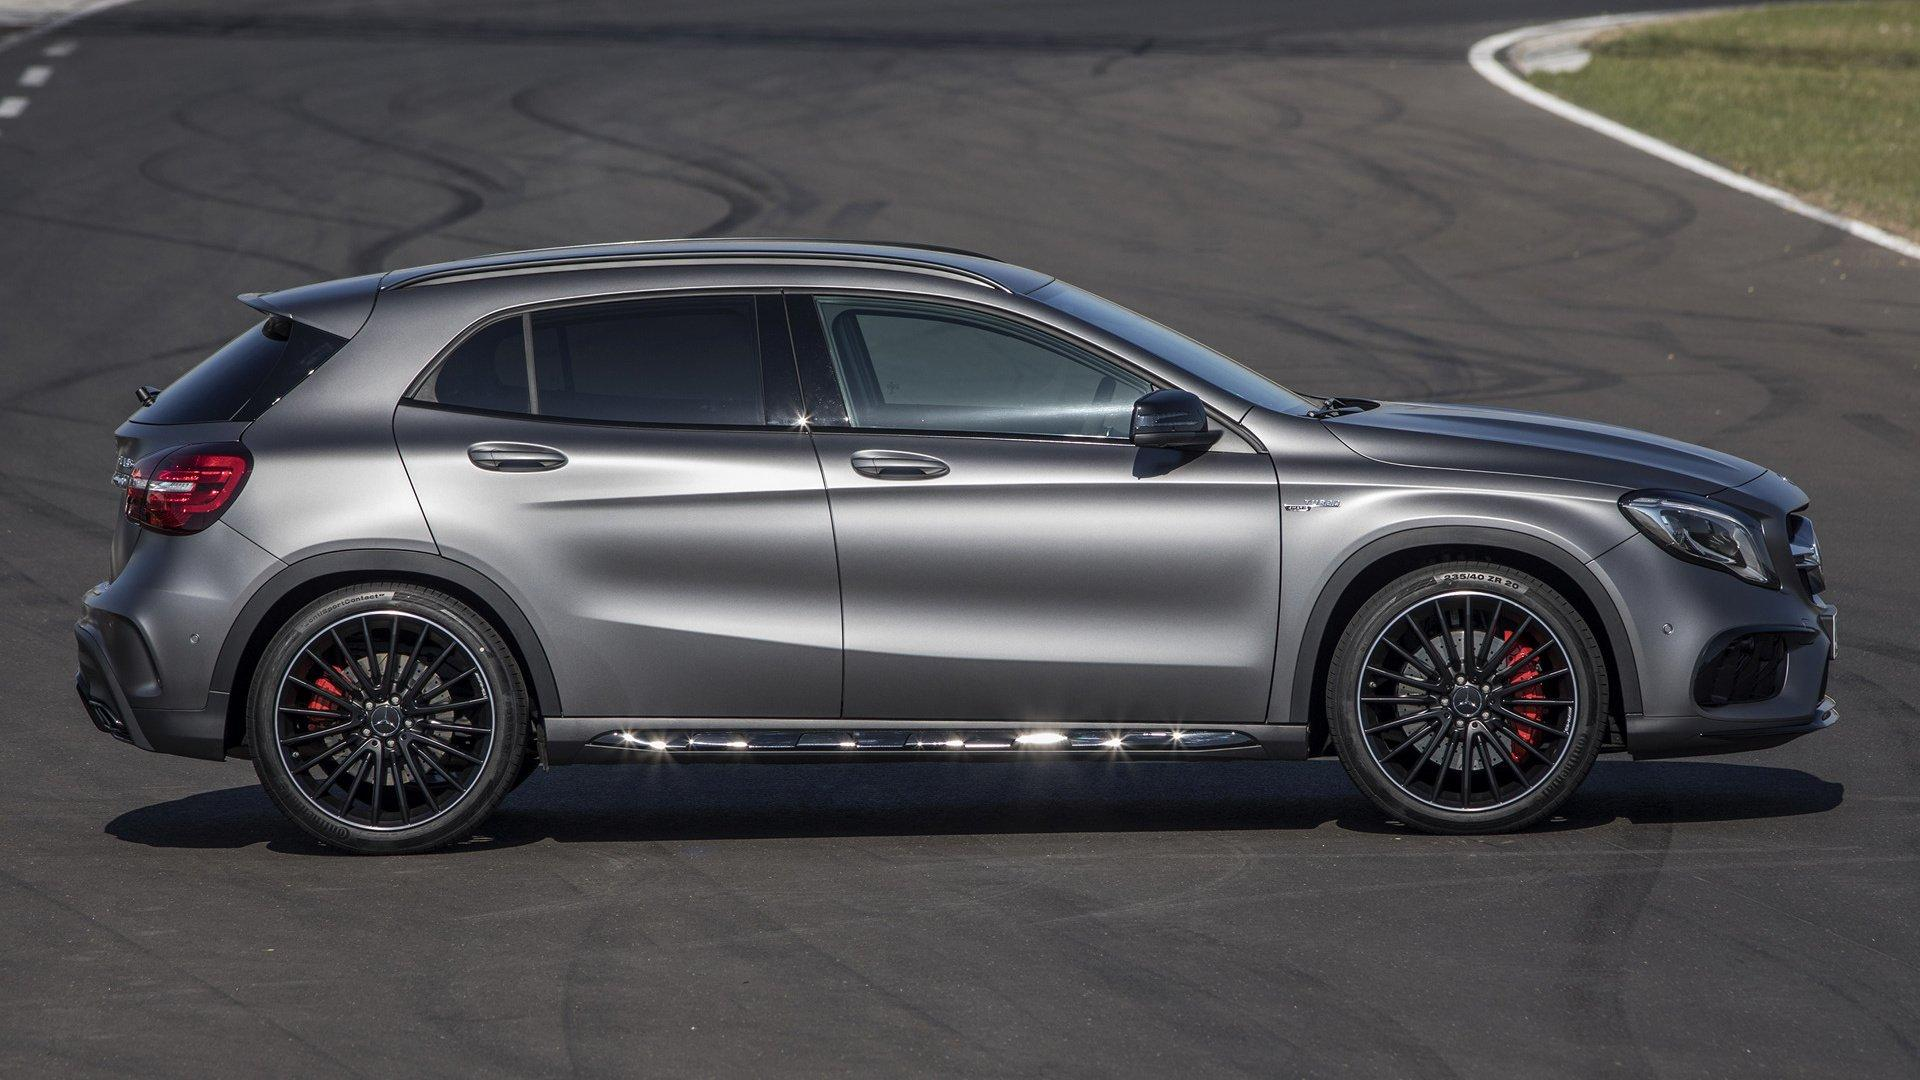 75 Mercedes-Benz GLA-Class HD Wallpapers | Background Images ...